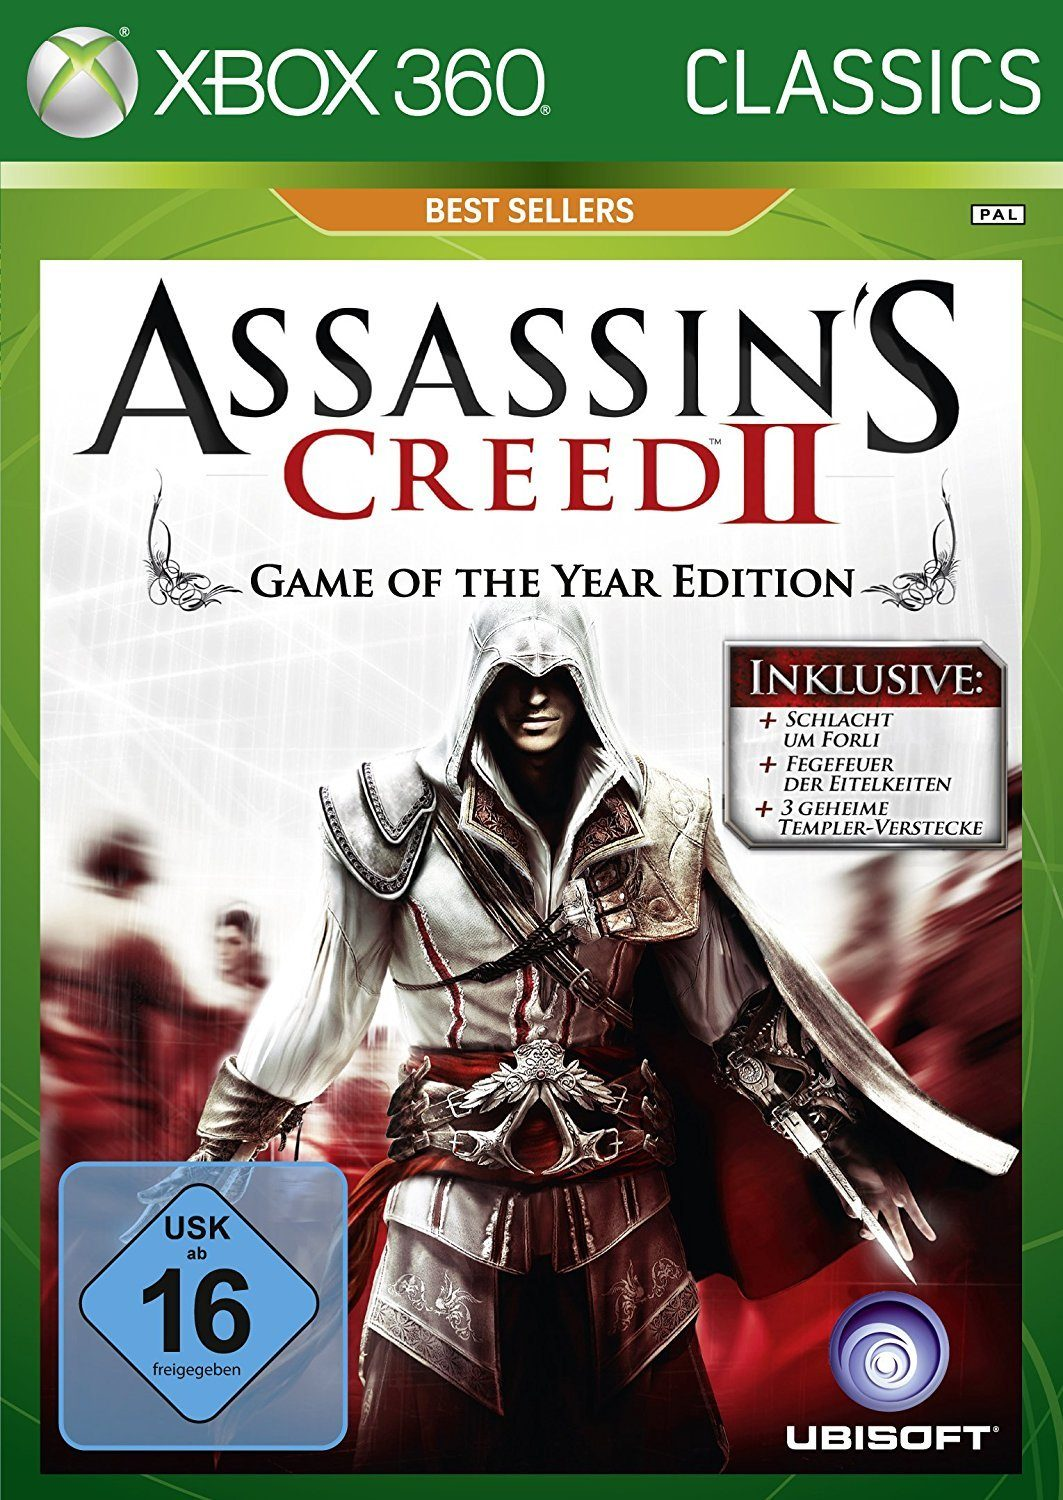 UBISOFT Software Pyramide - Xbox 360 Spiel »Assassin's Creed 2«